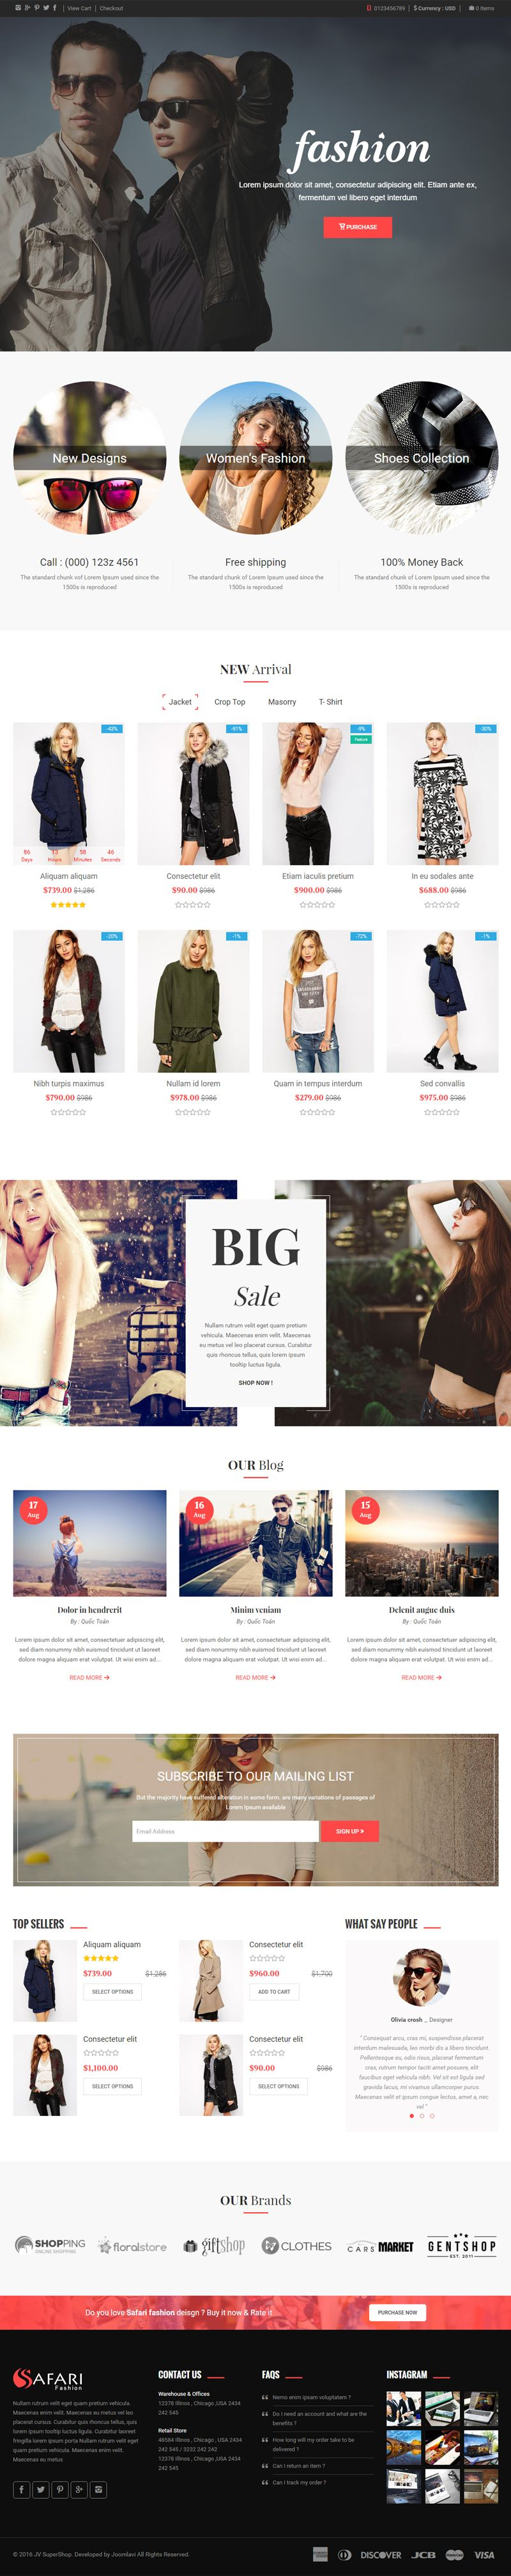 Safari - Responsive Multipurpose Shopify Theme Screenshot 1